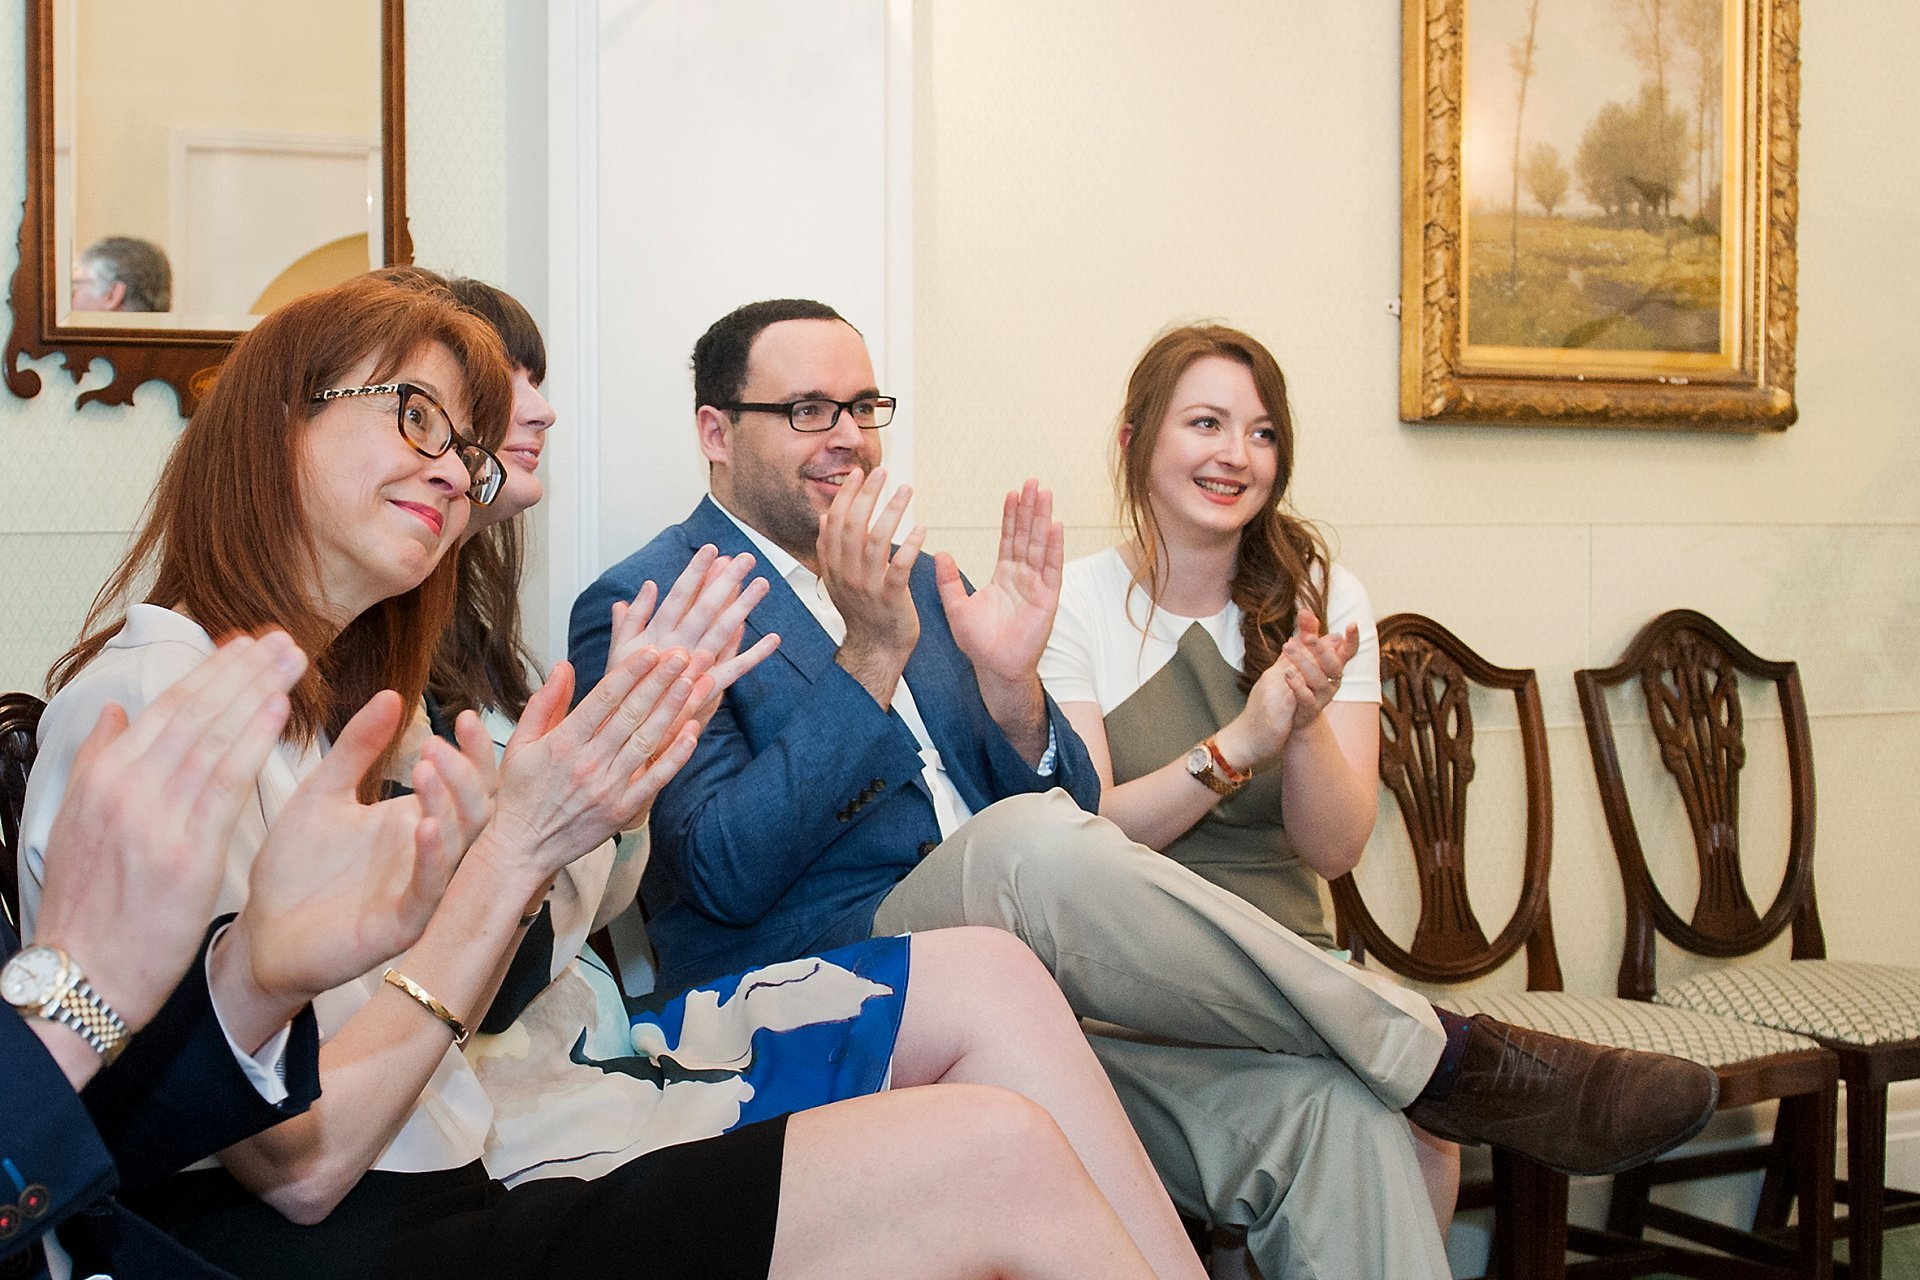 Guests in Chelsea's Rossetti Room clap the bride and groom on their marriage